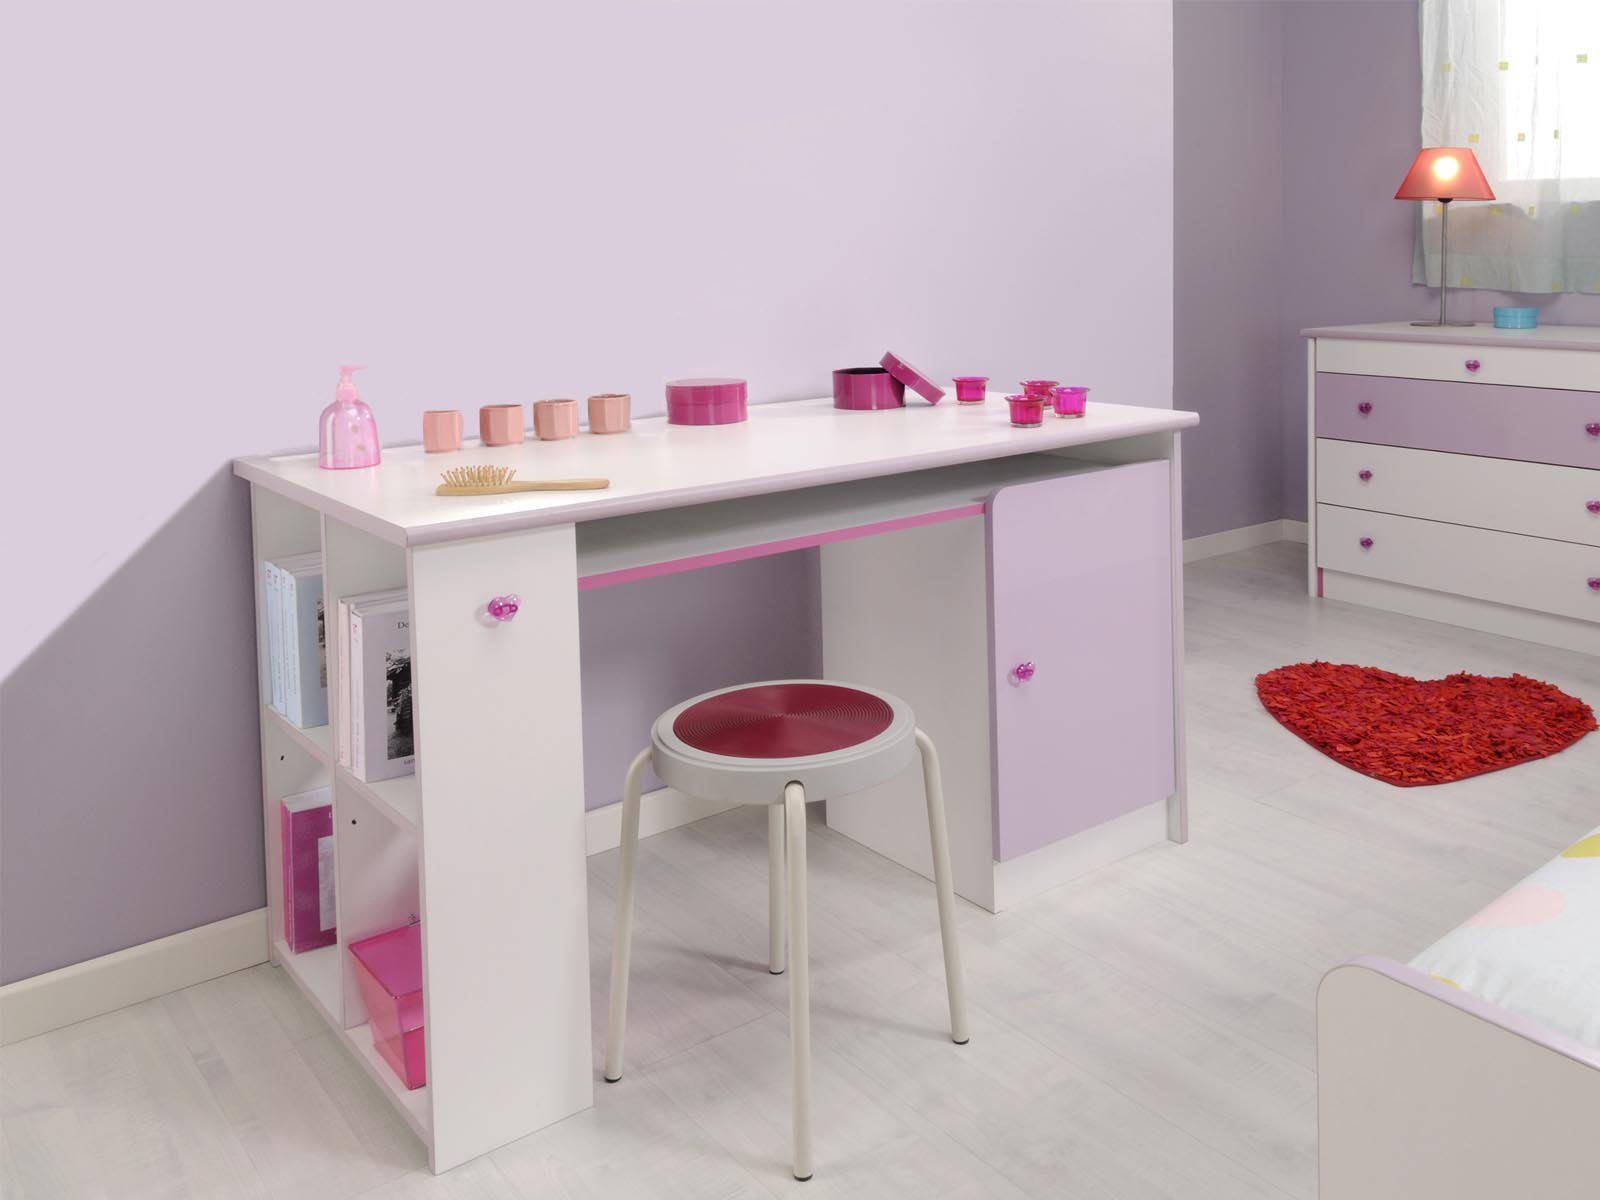 ikea chambre fille 6 ans avec des id es int ressantes pour la conception de la. Black Bedroom Furniture Sets. Home Design Ideas